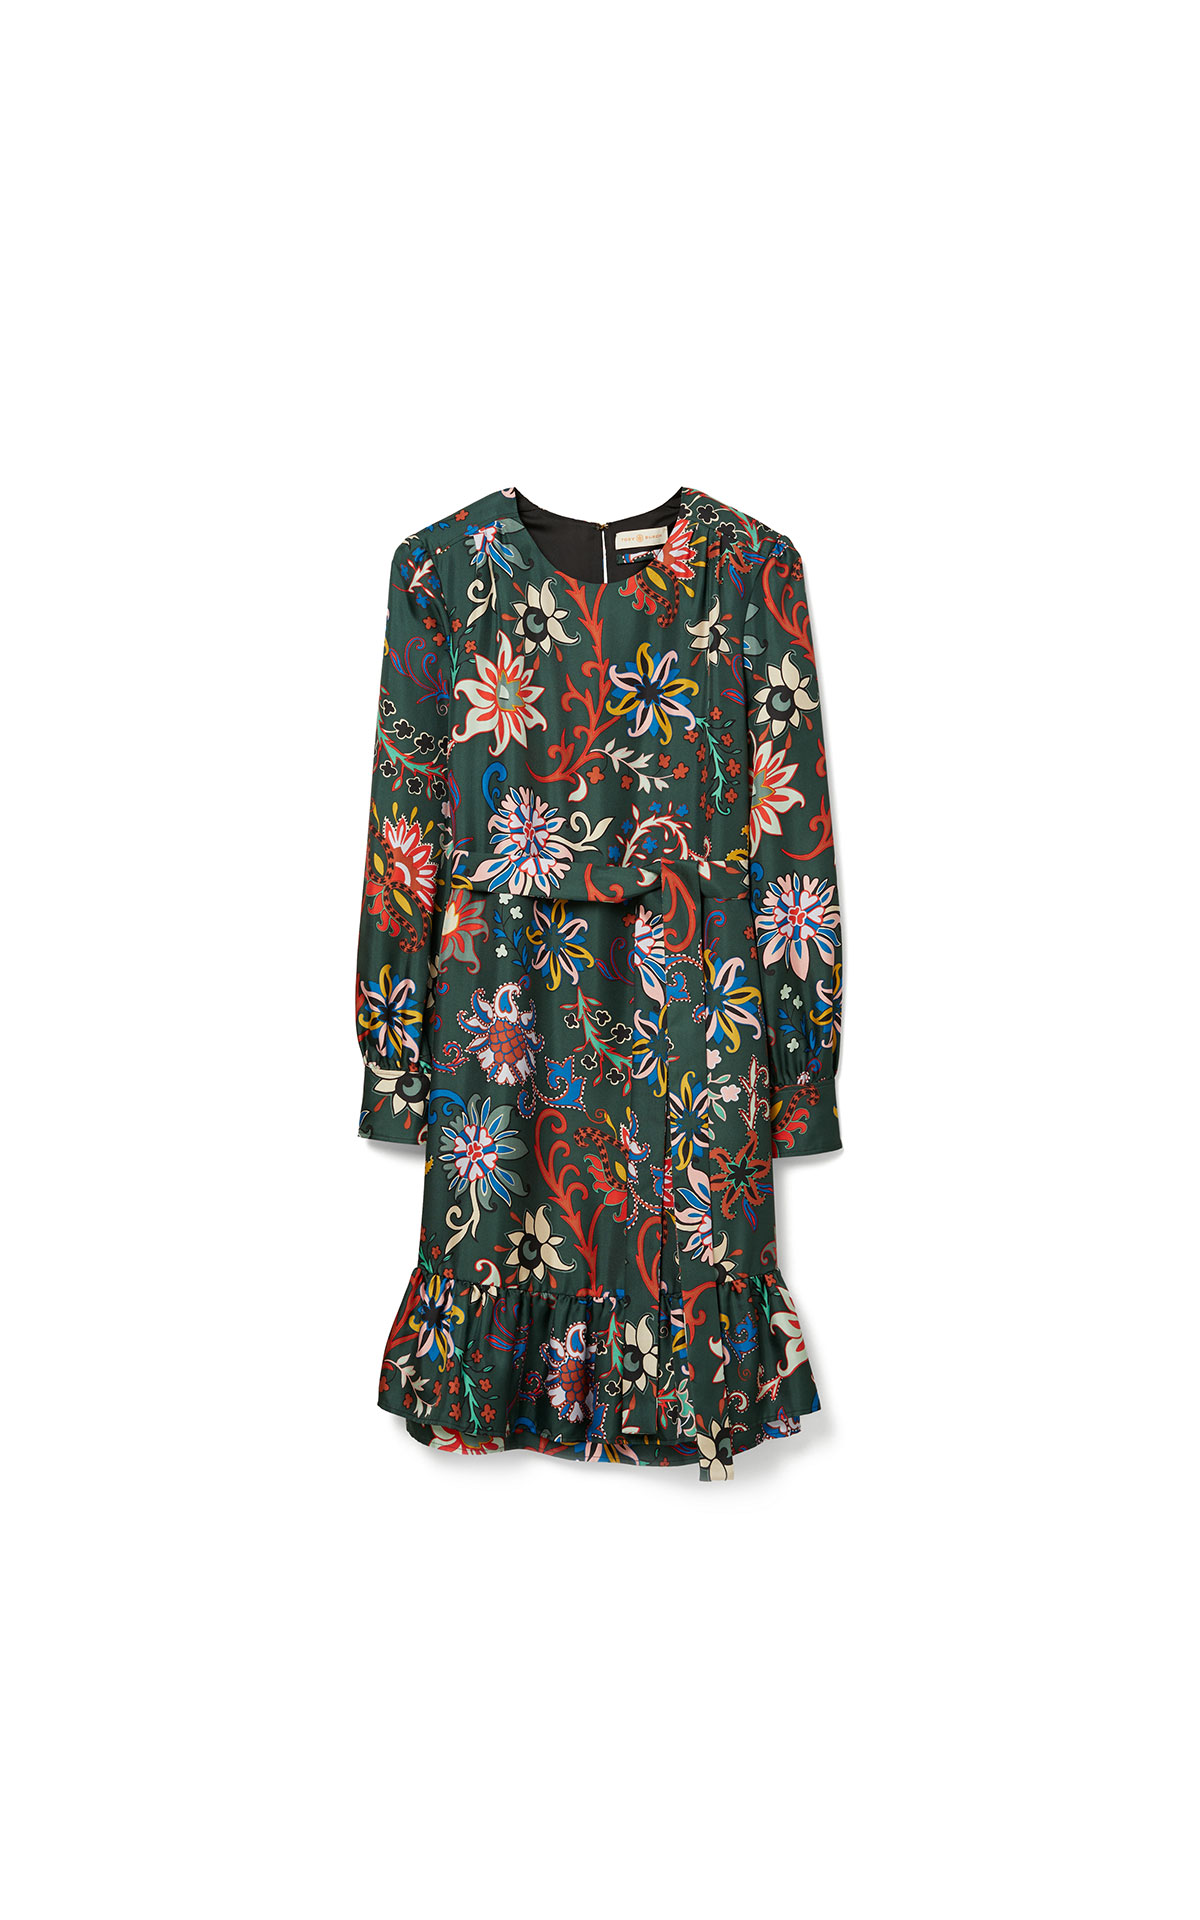 Tory Burch Printed silk twill shift dress in black mountain floral at The Bicester Village Shopping Collection